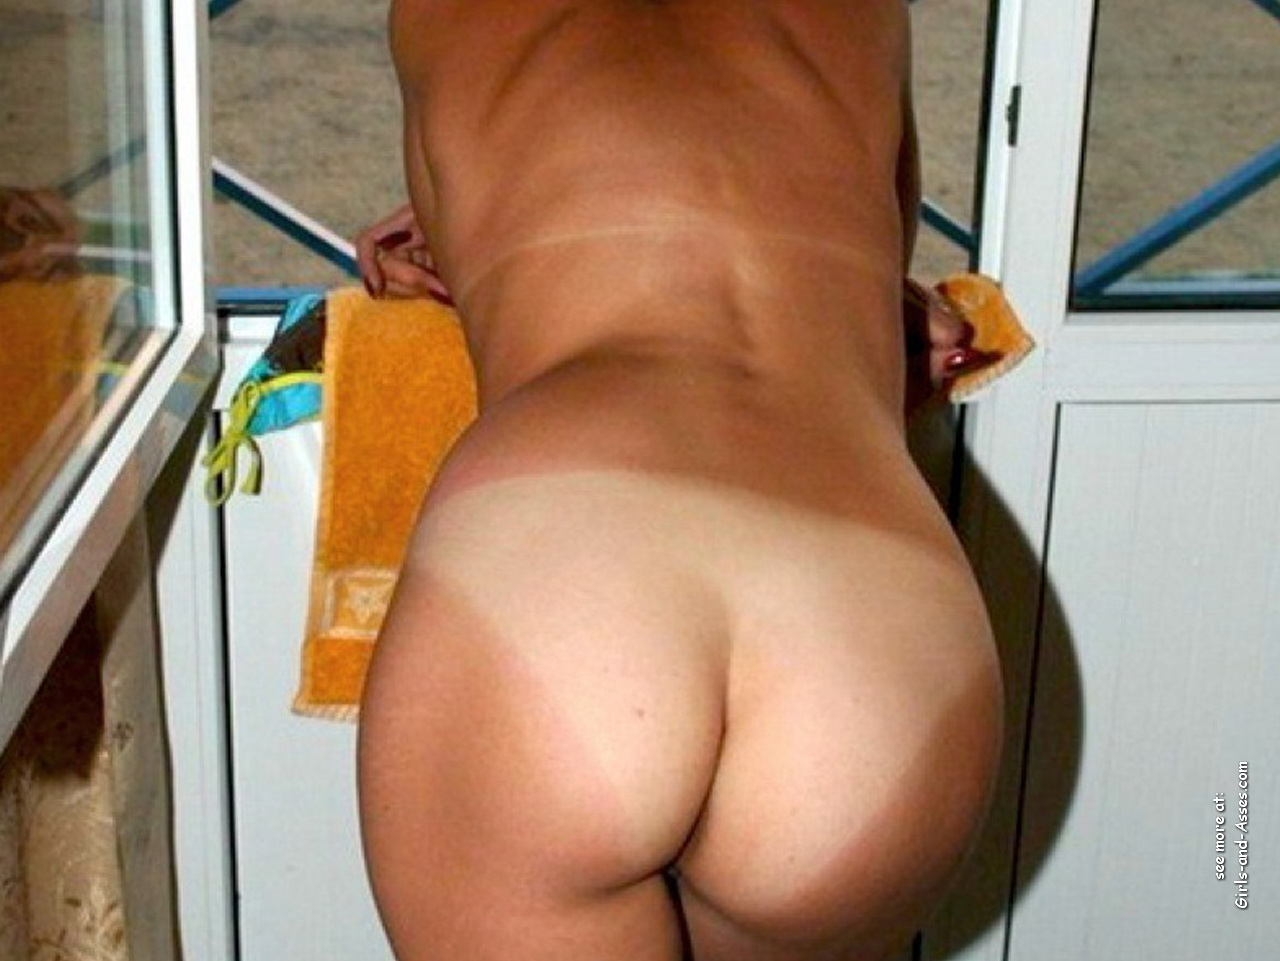 naked mom ass picture 03140